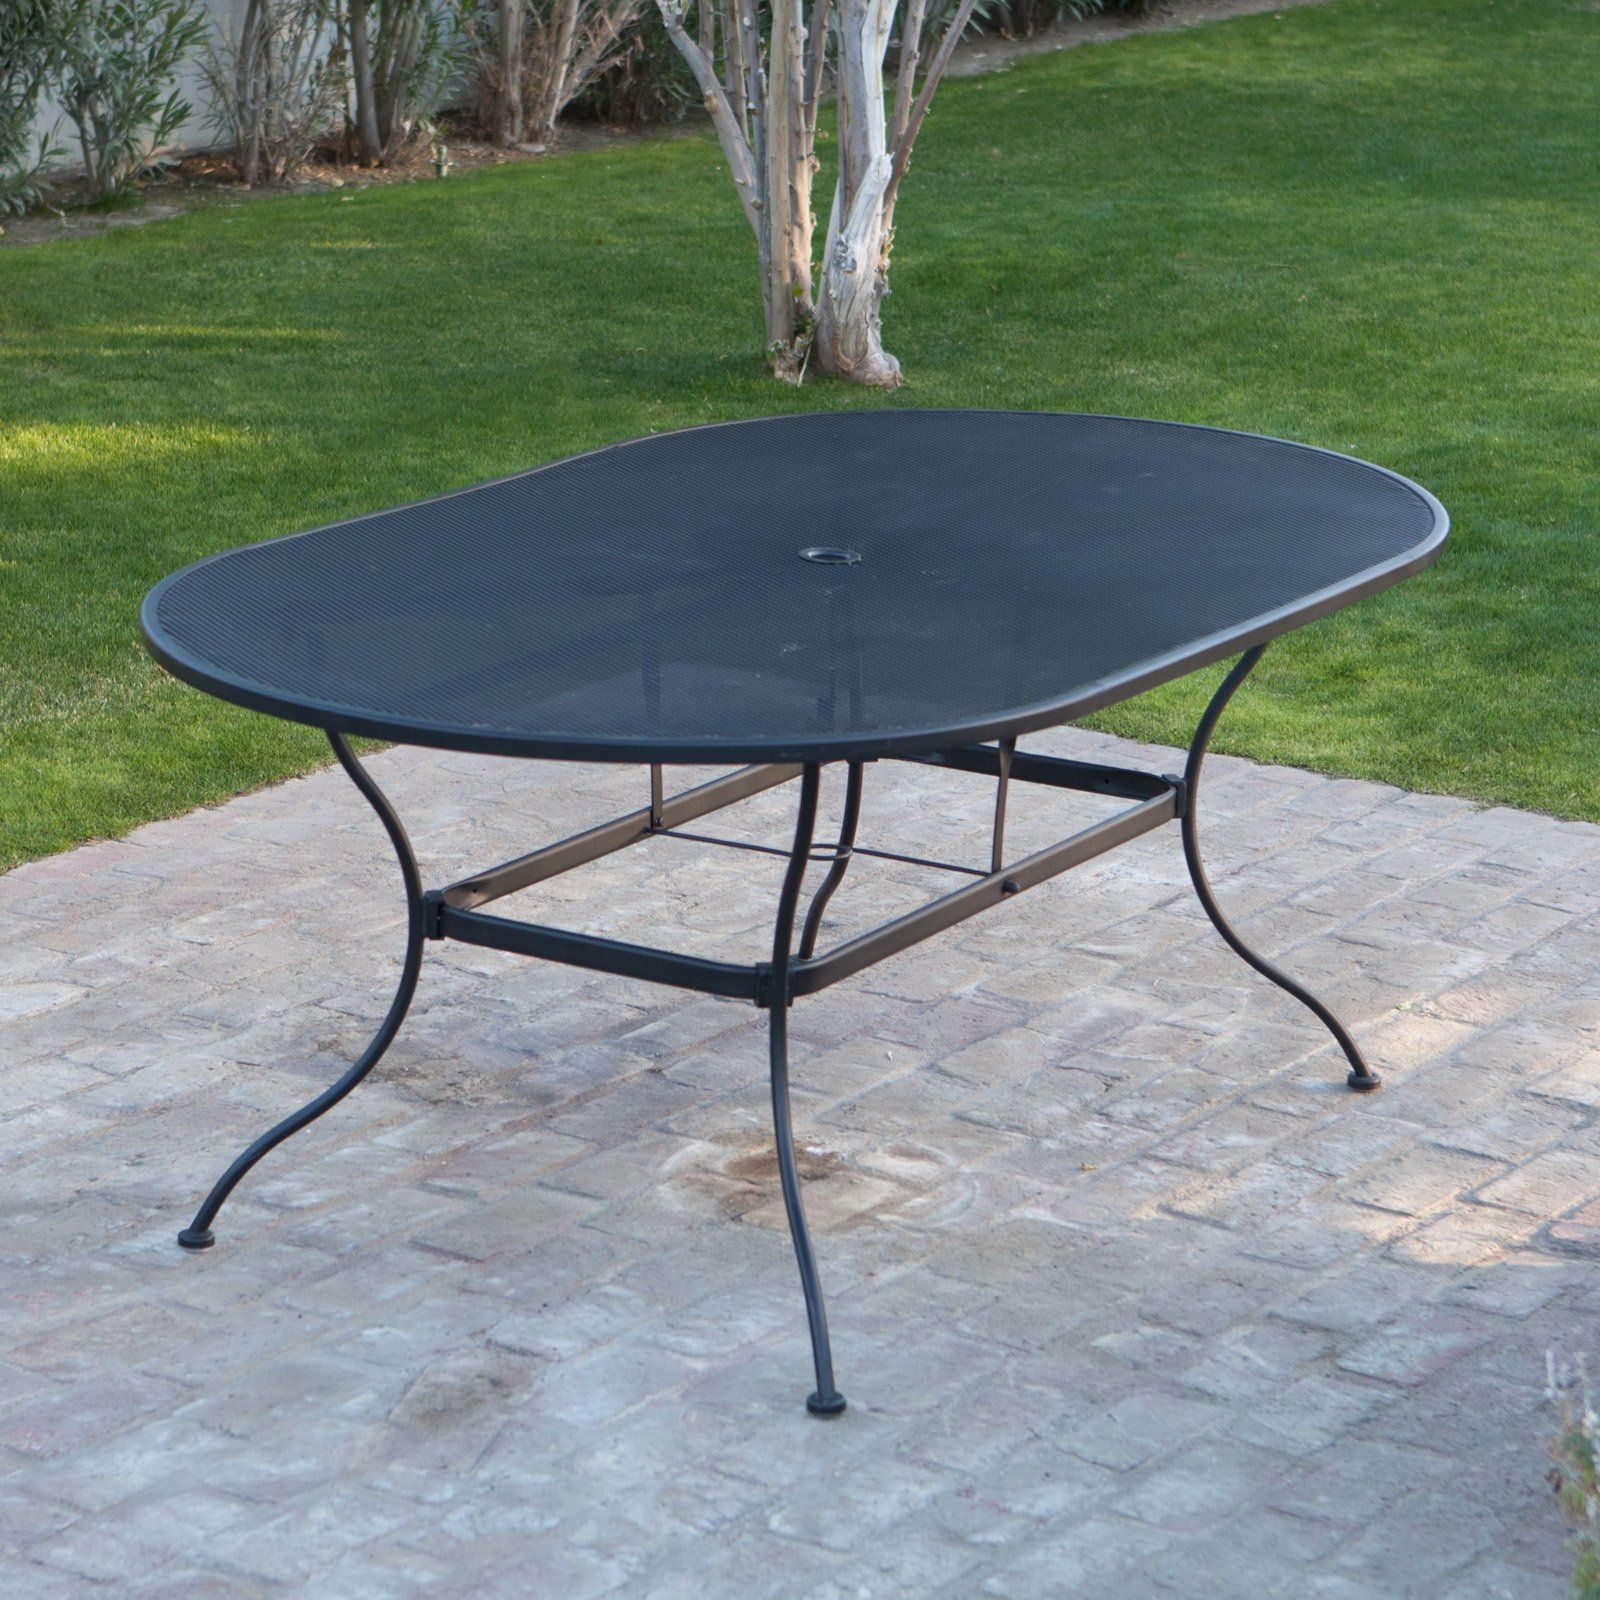 Have To Have It Woodard Stanton 42 X 72 In Oval Wrought Iron Patio Dining Table Textured Black 399 9 Iron Patio Furniture Patio Dining Table Patio Table